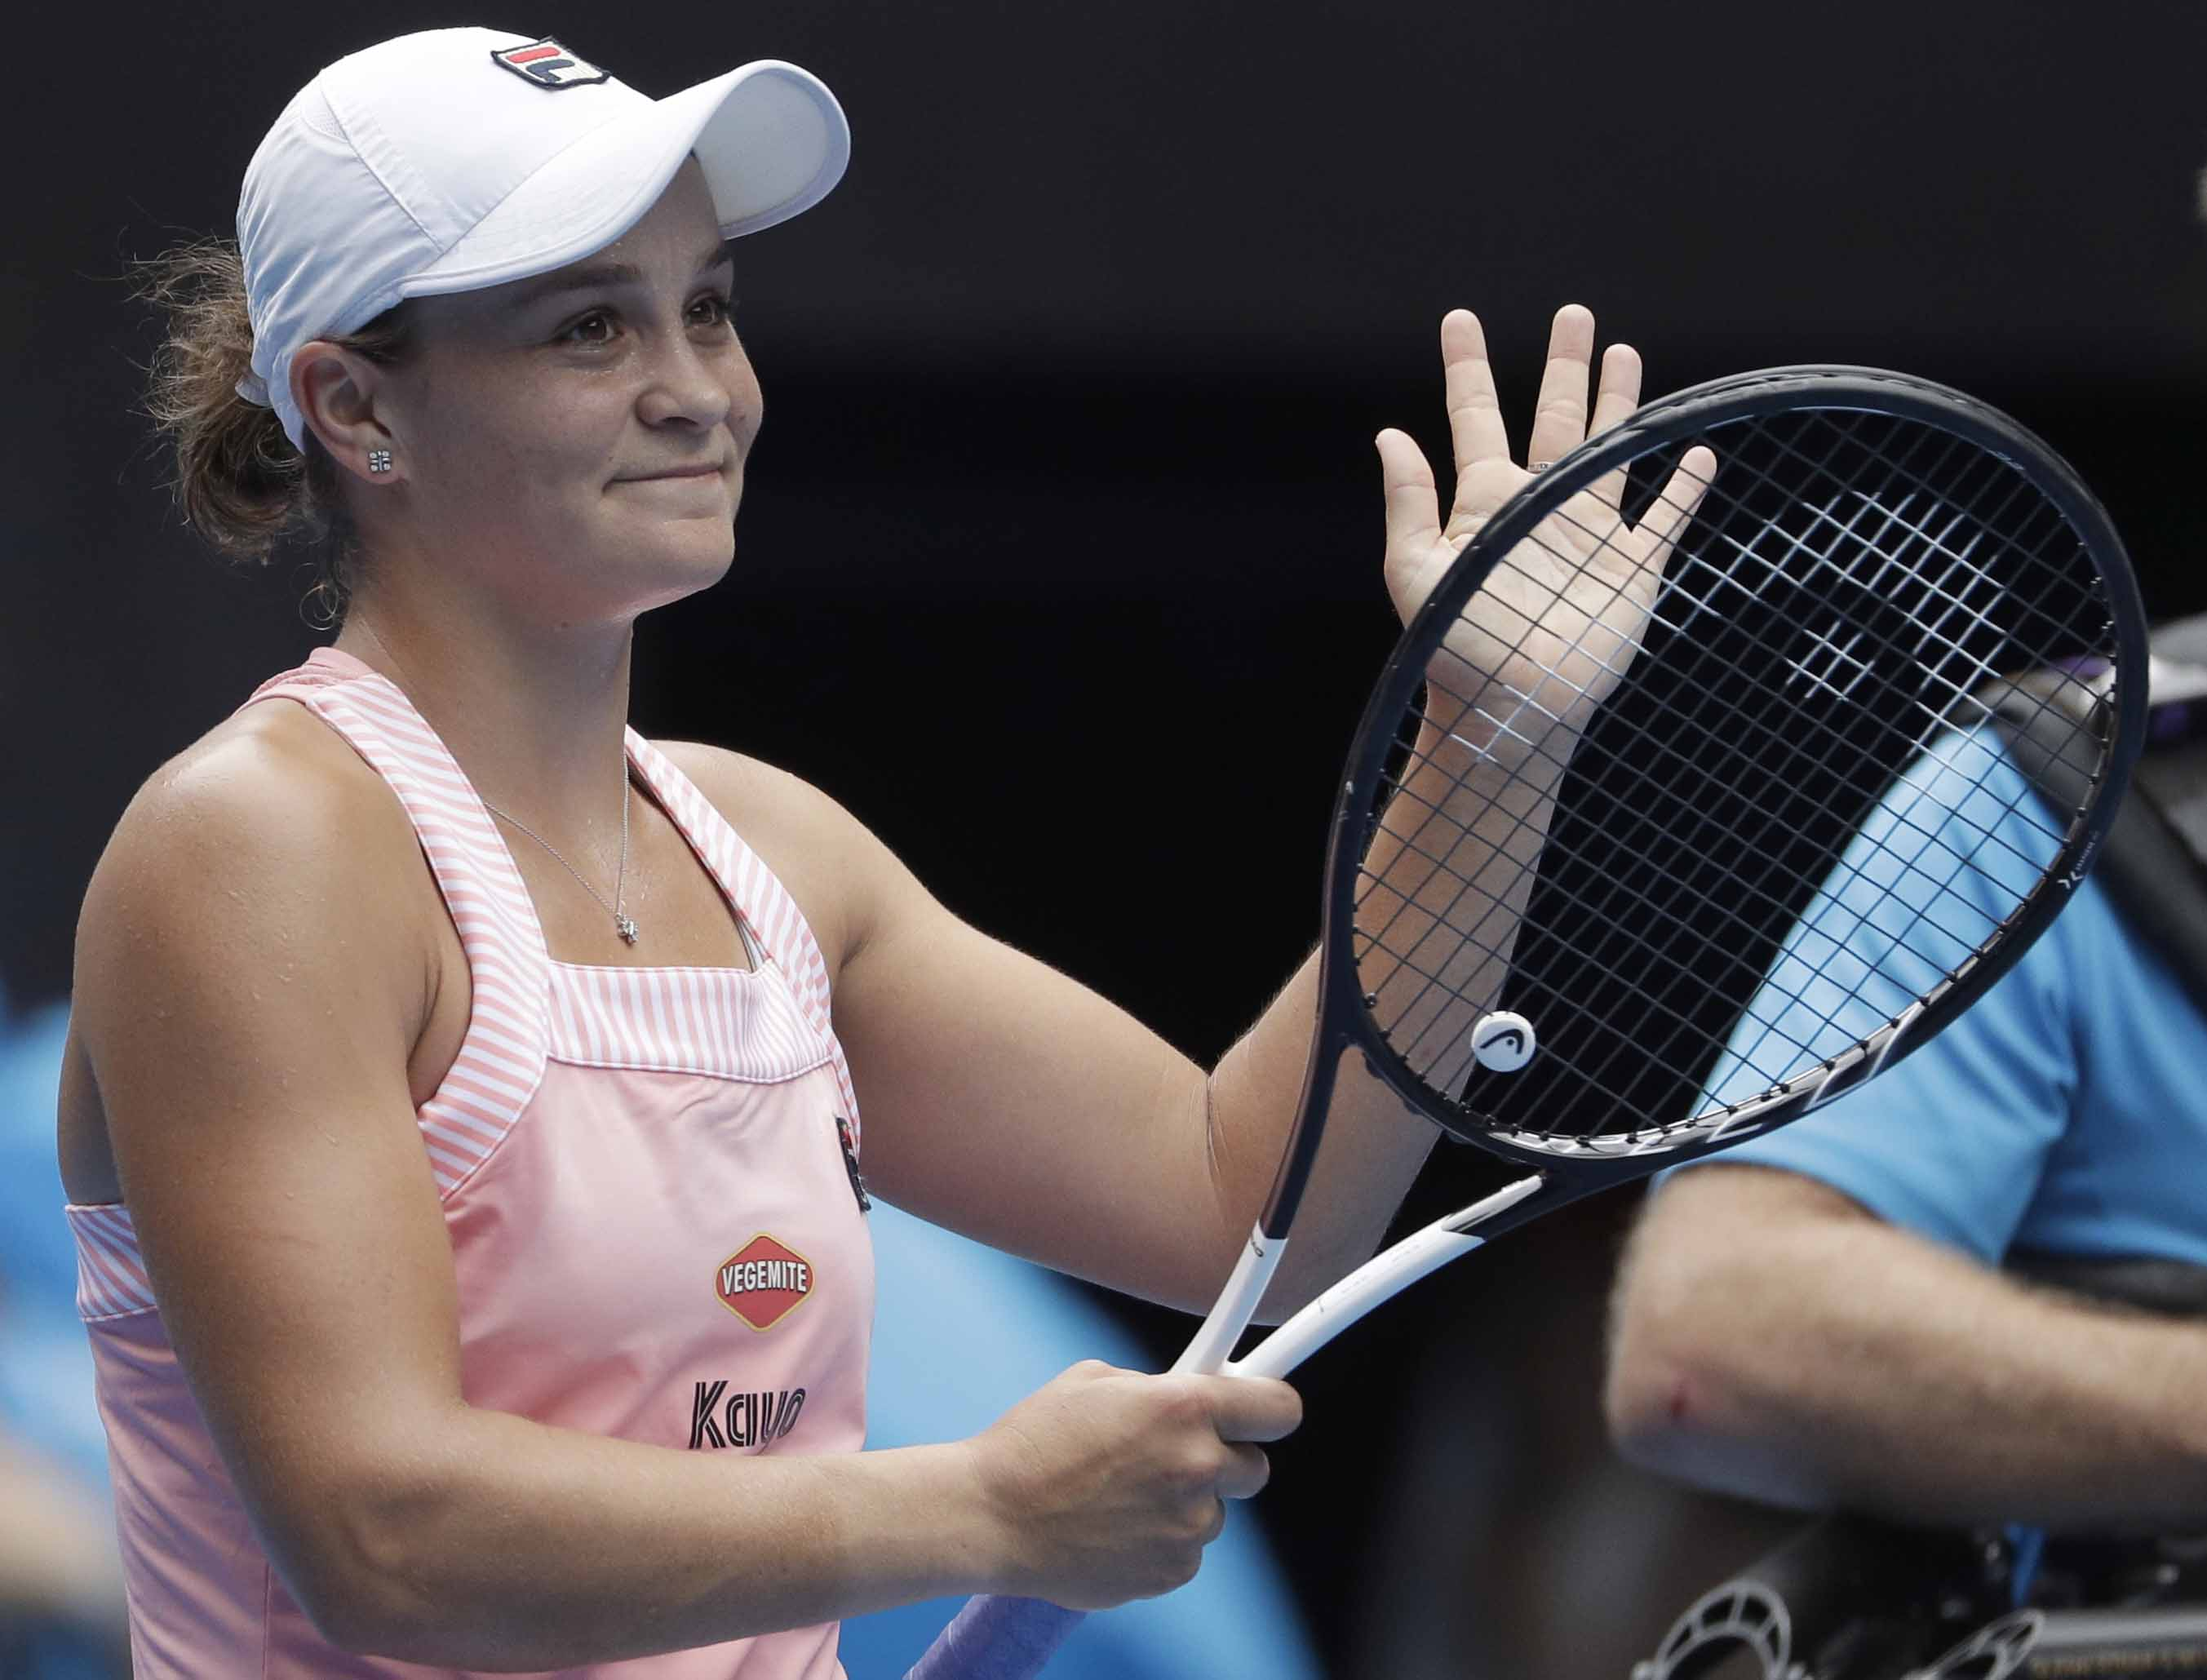 'Short and strong' Barty enjoying taste of Open success